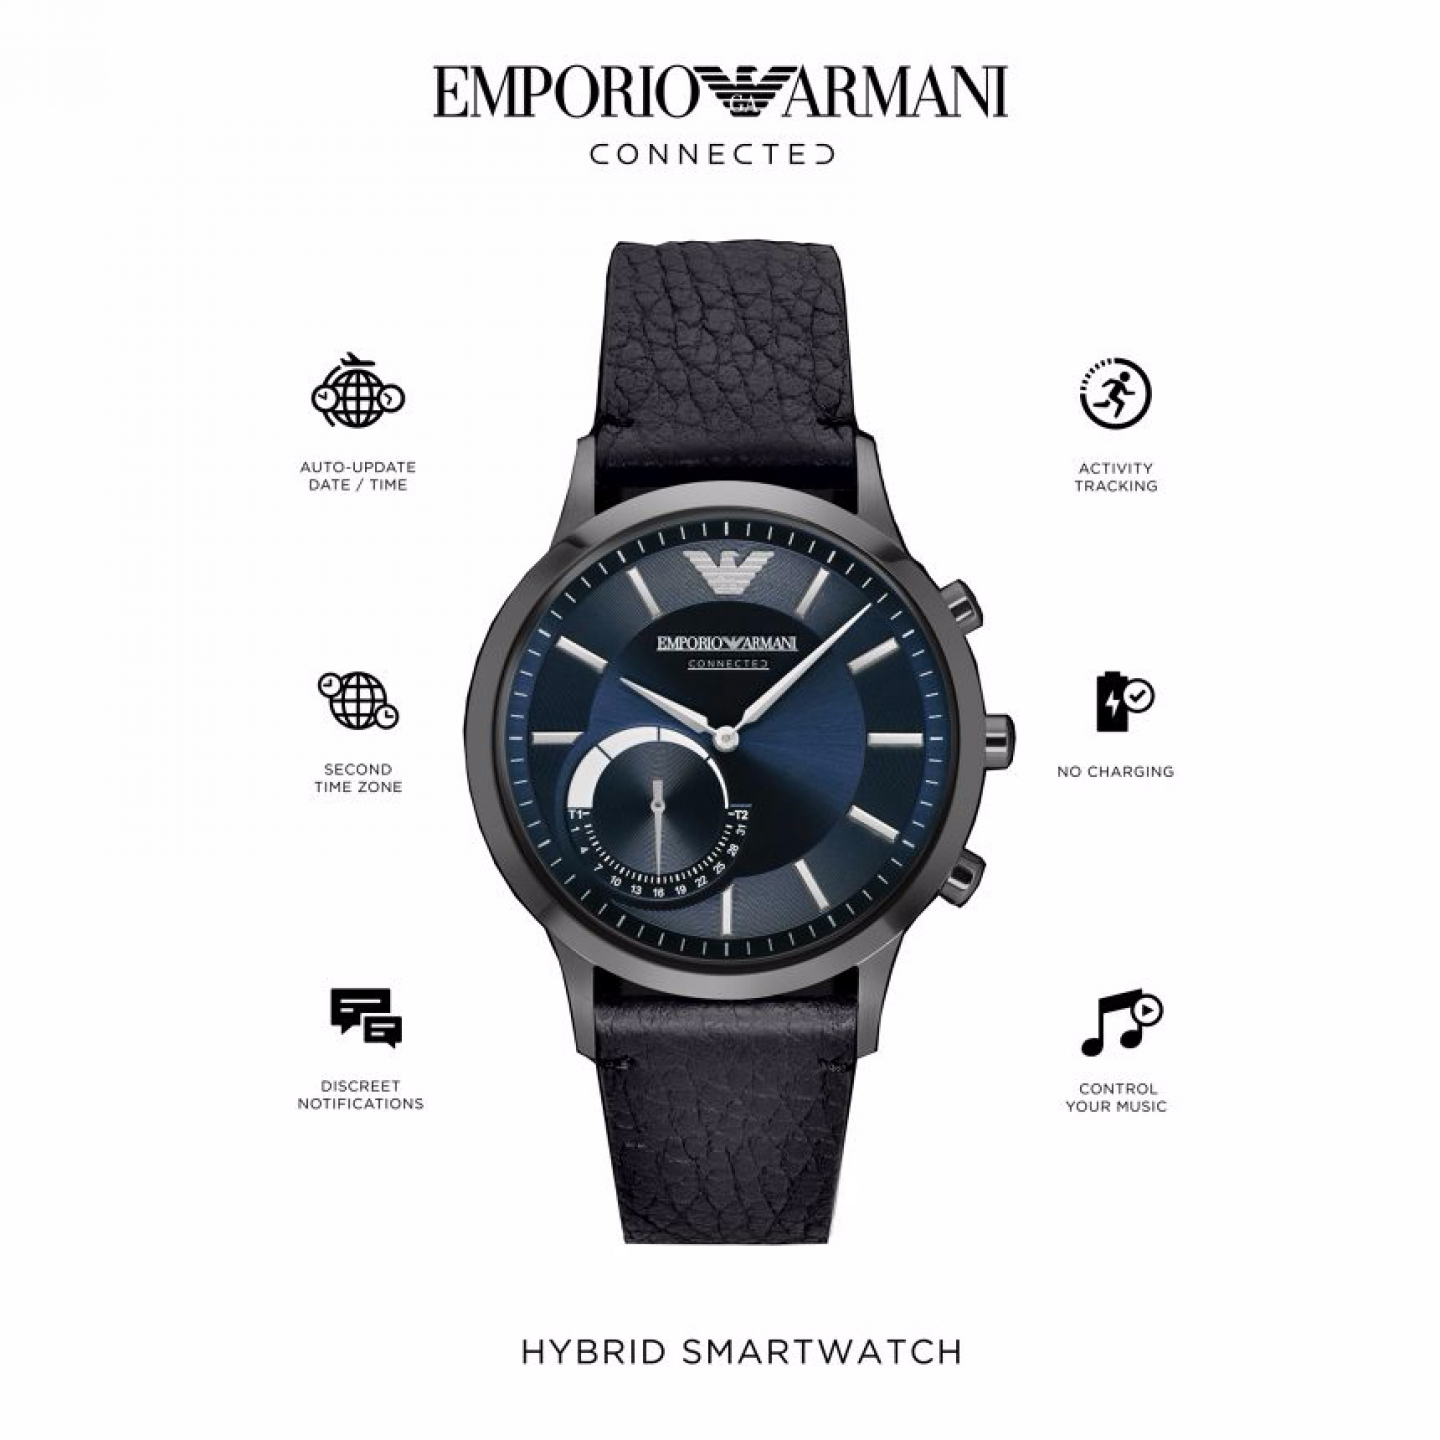 fe97d1afb4c Relógio inteligente EMPORIO ARMANI Connected(Smartwatch) - ART3004 ...